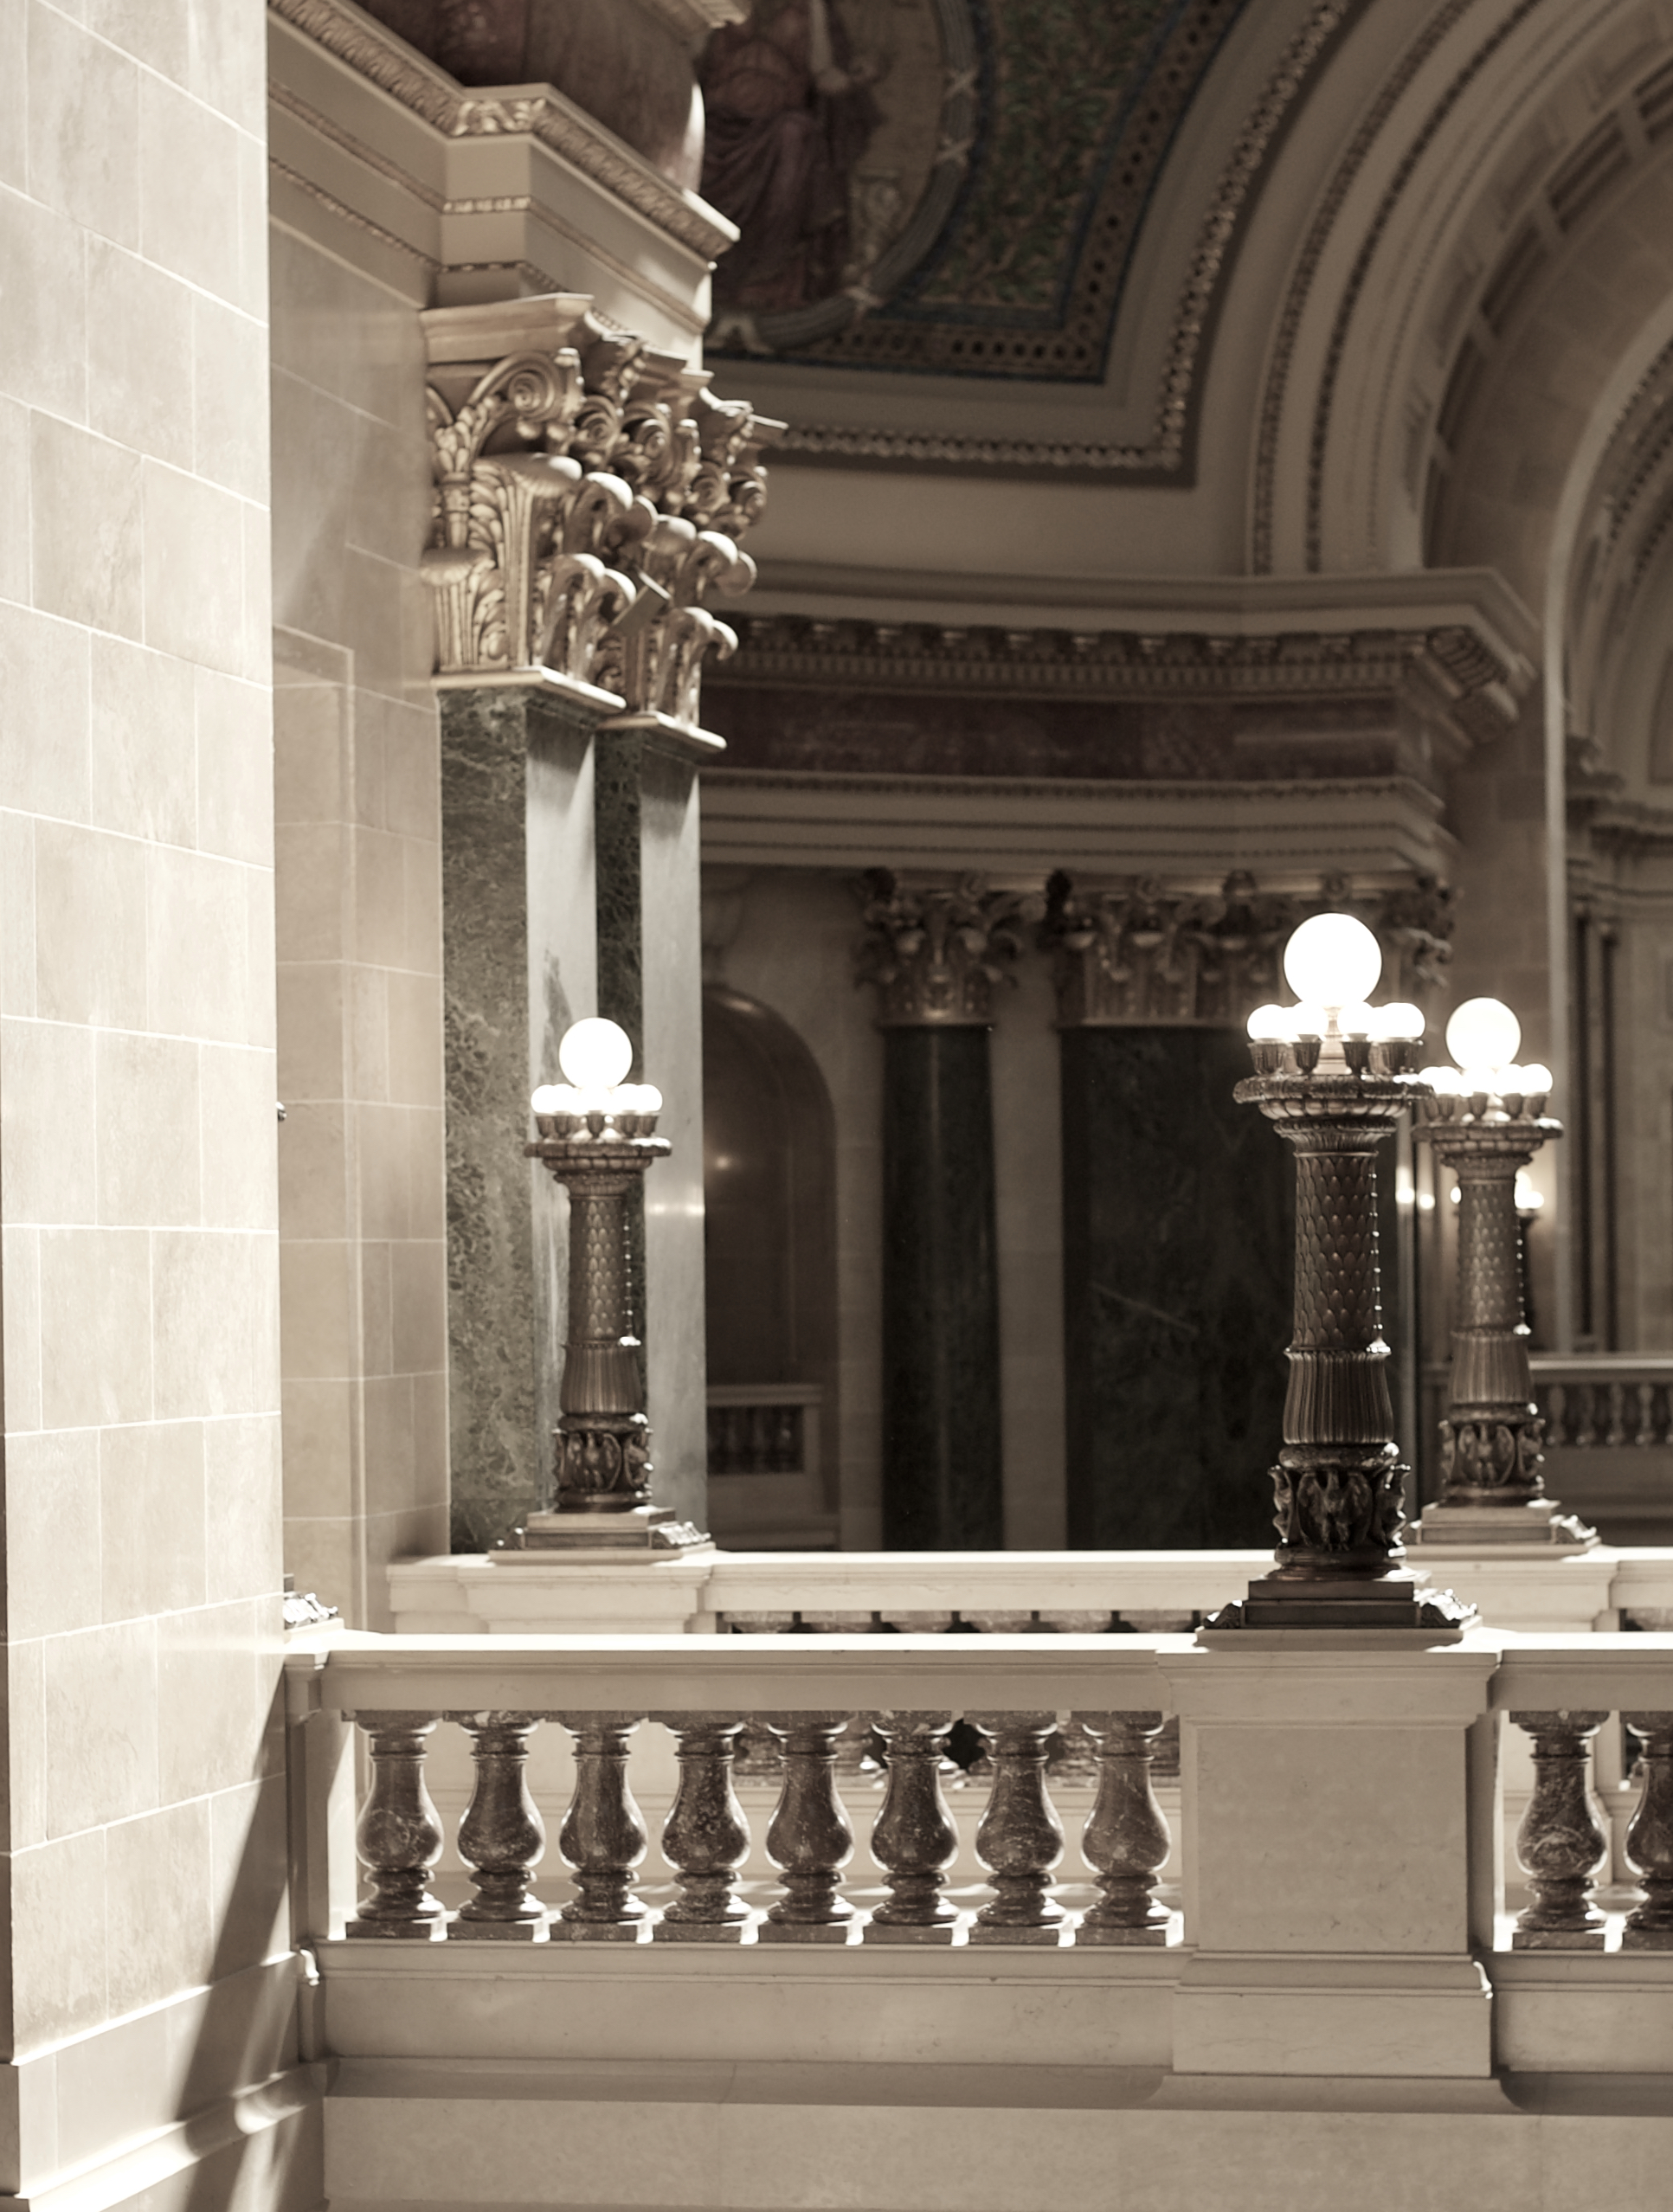 Interior Lighting. State Capitol. Madison, Wisconsin. October 2016. © William D. Walker